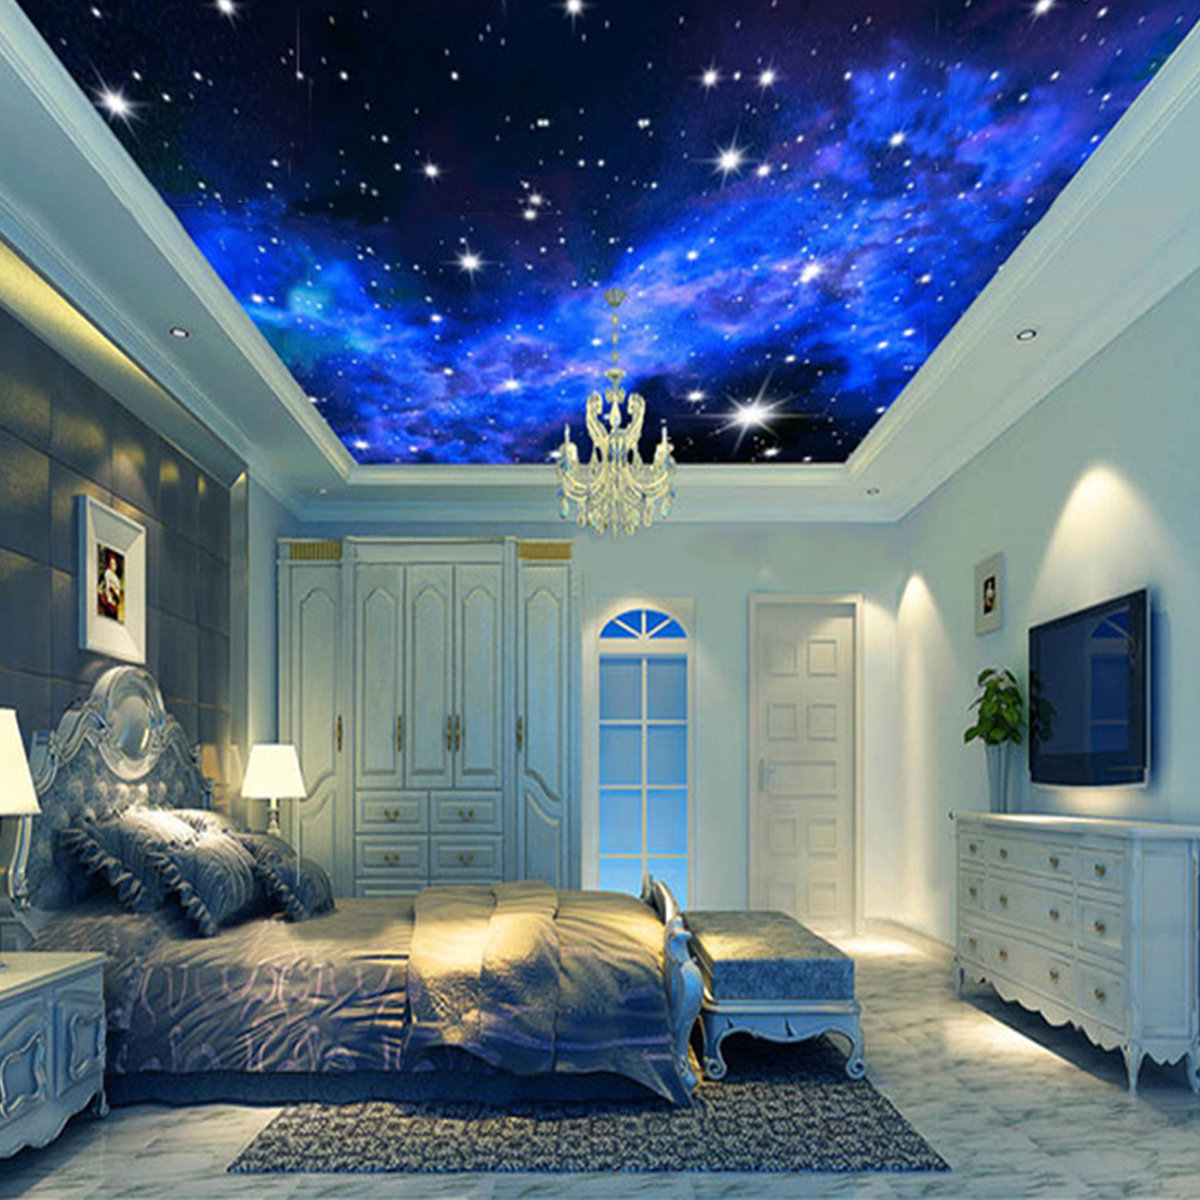 3d wallpaper mural night clouds star sky wall paper for Mural lighting